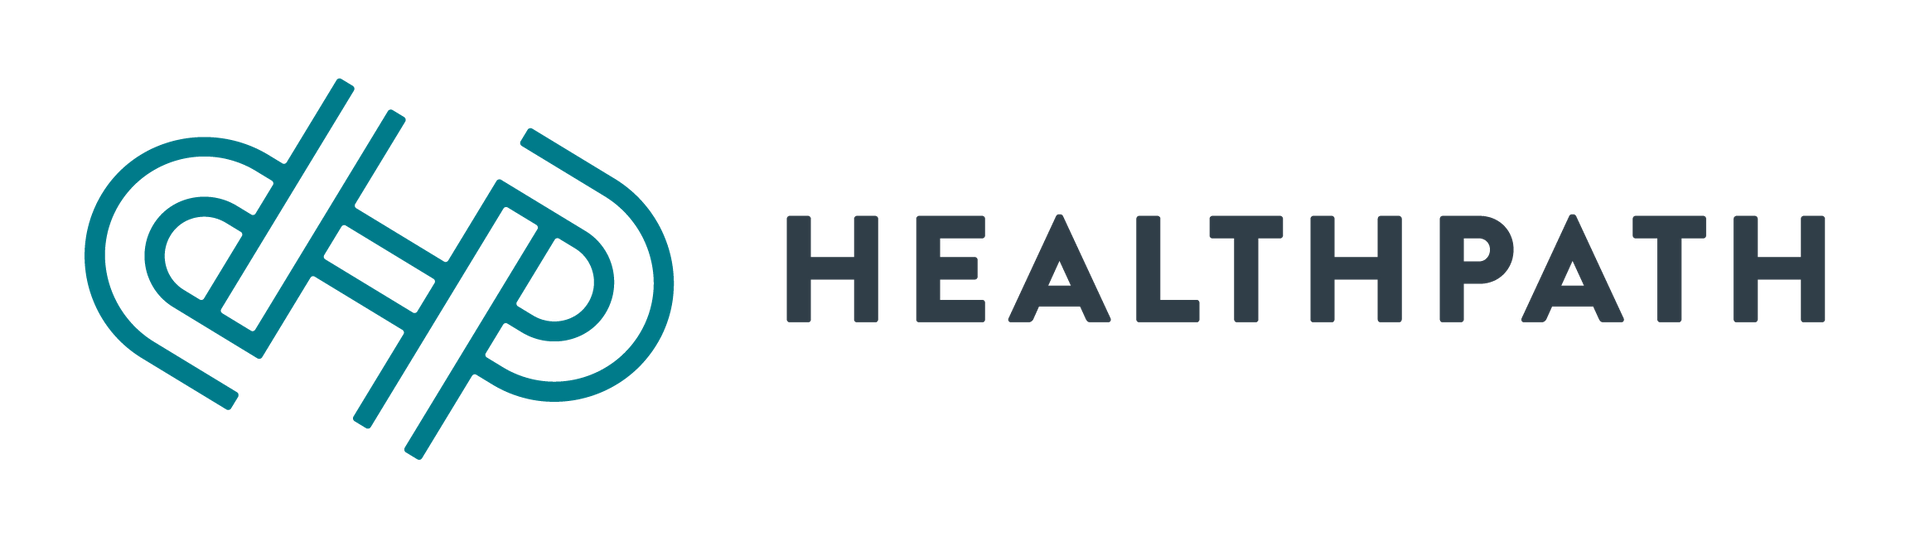 HealthPath-logoTransp.png